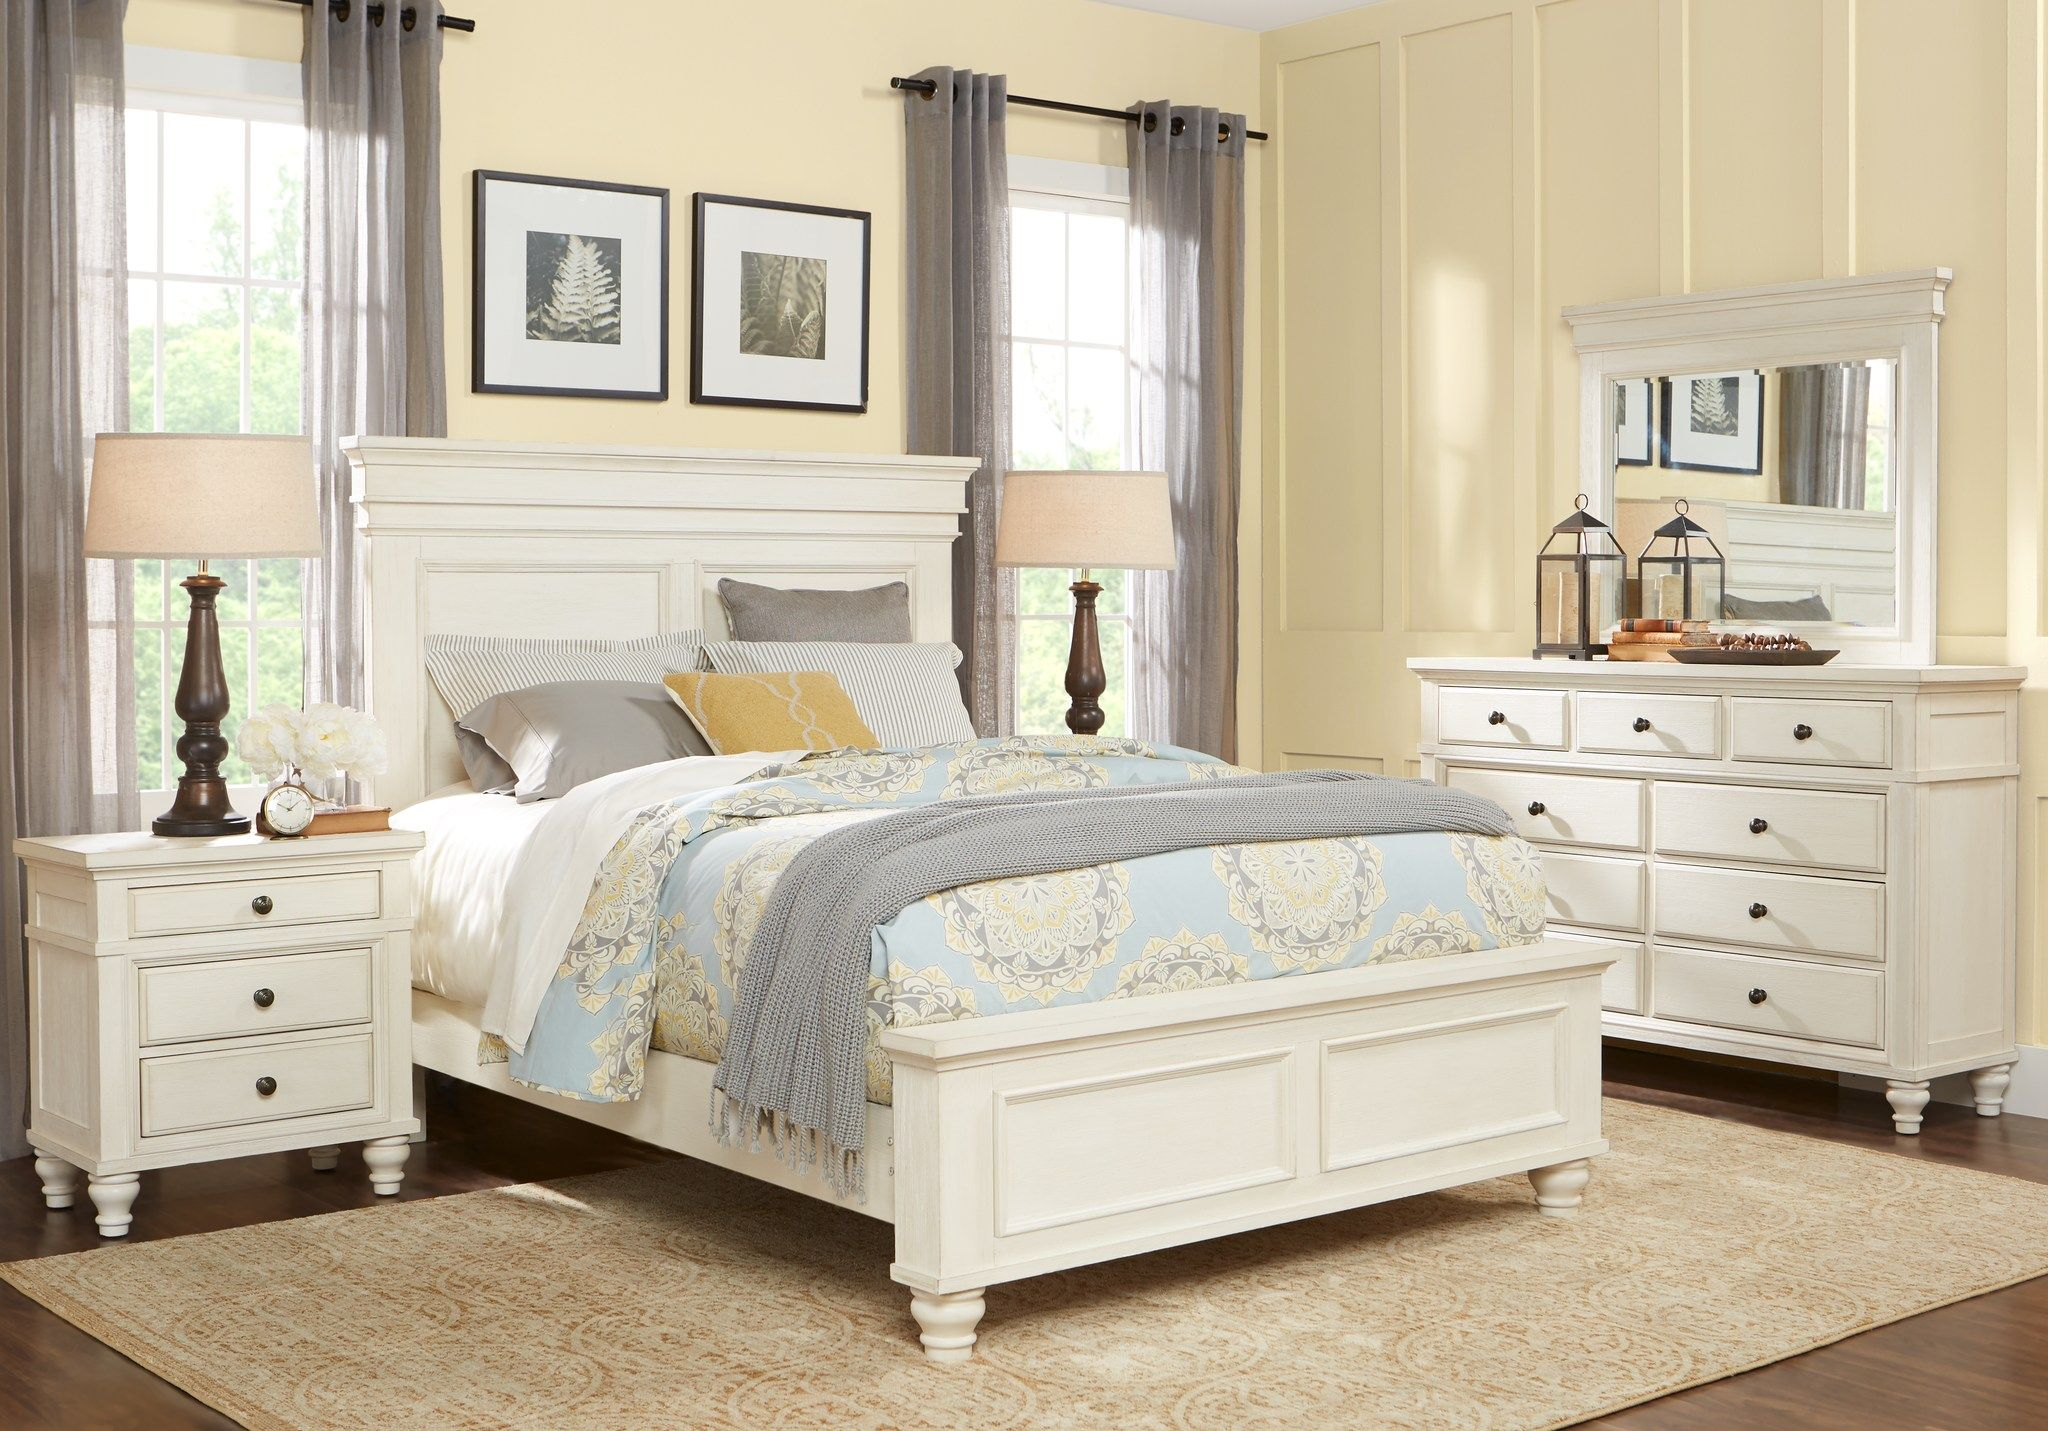 Best King Size Bedroom Sets Suites For Sale With Images 400 x 300